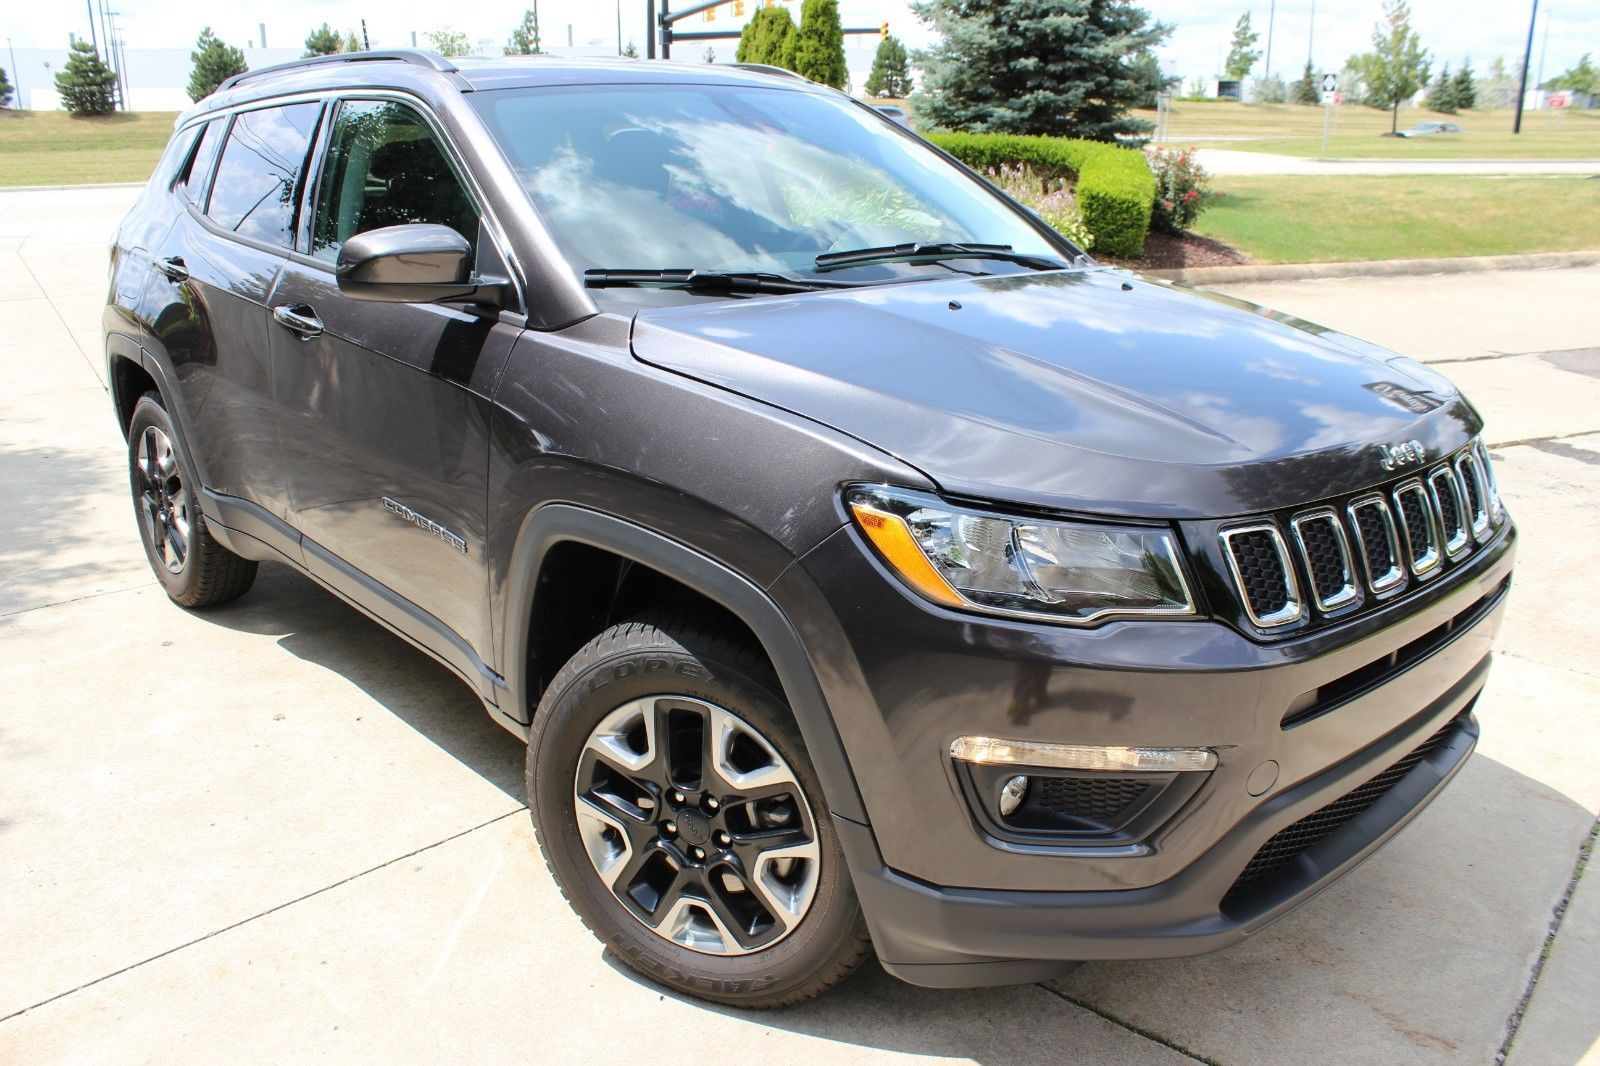 Loaded 2017 Jeep Compass Latitude Offroad 2017 Jeep Compass Jeep Compass Jeep